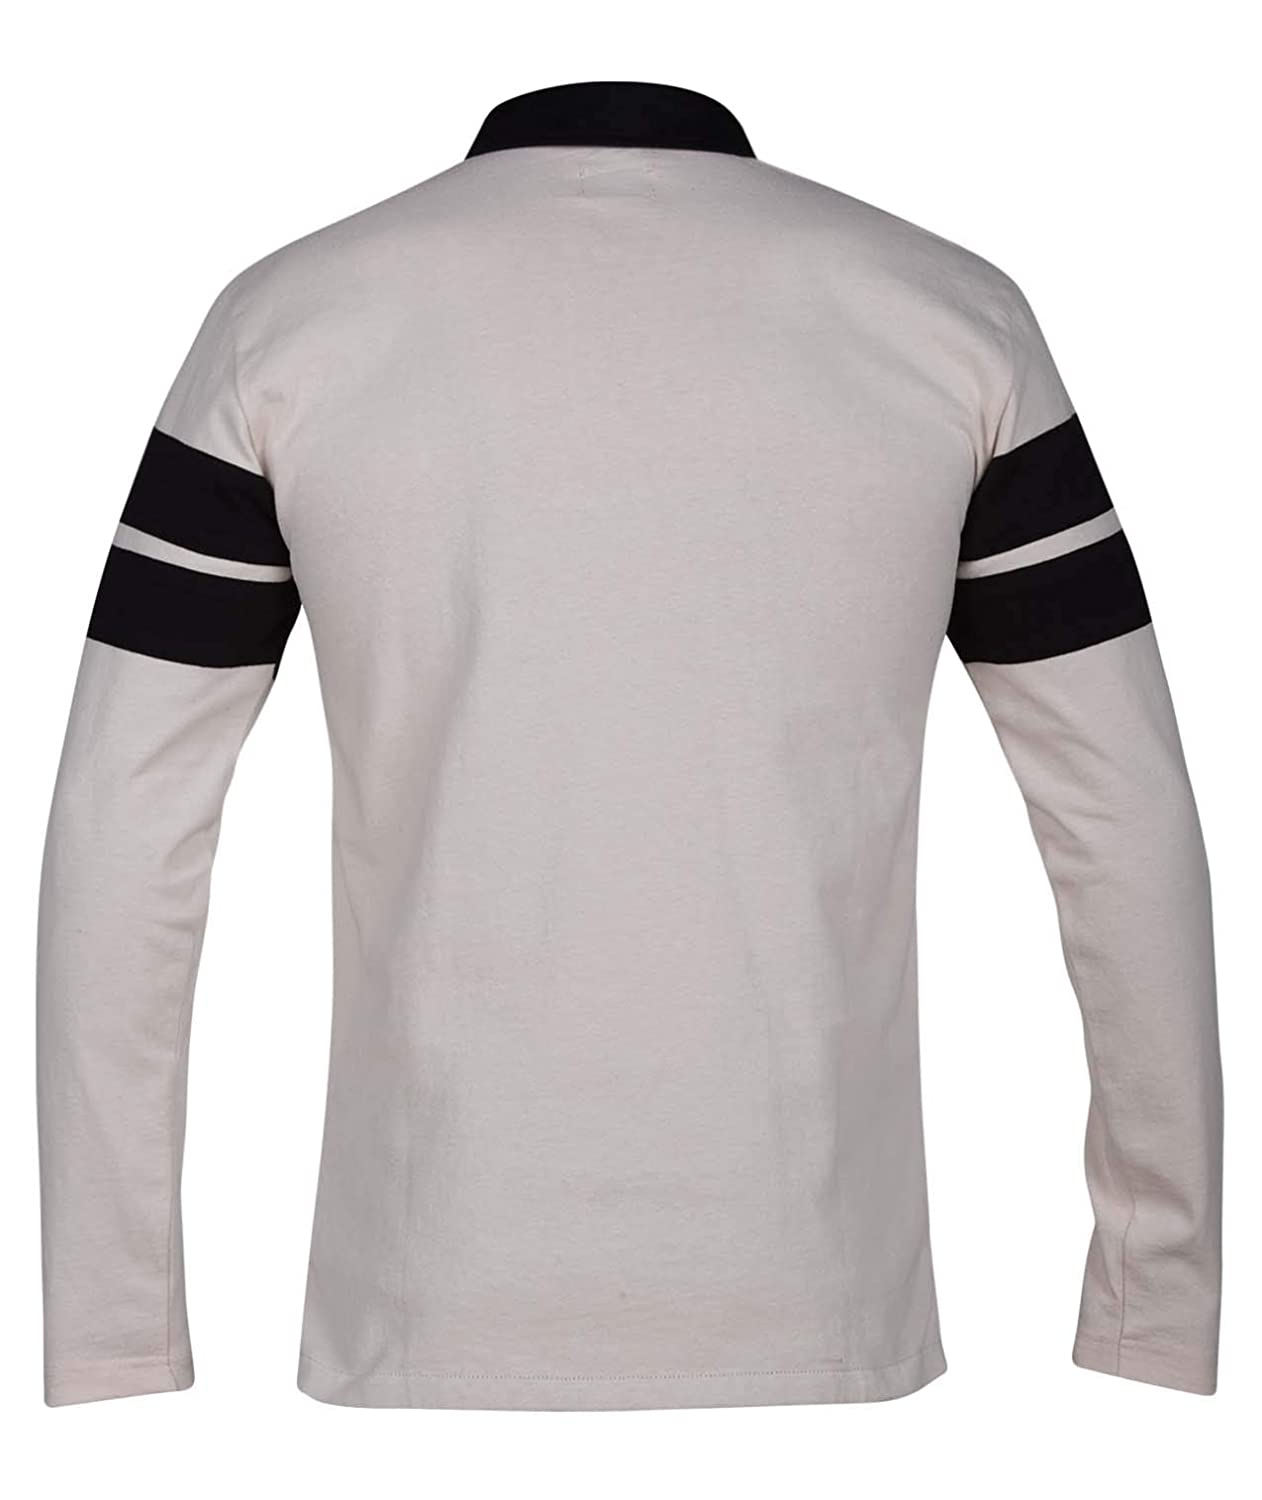 Hurley Mens Collared Rugby Polo Long Sleeve Shirt